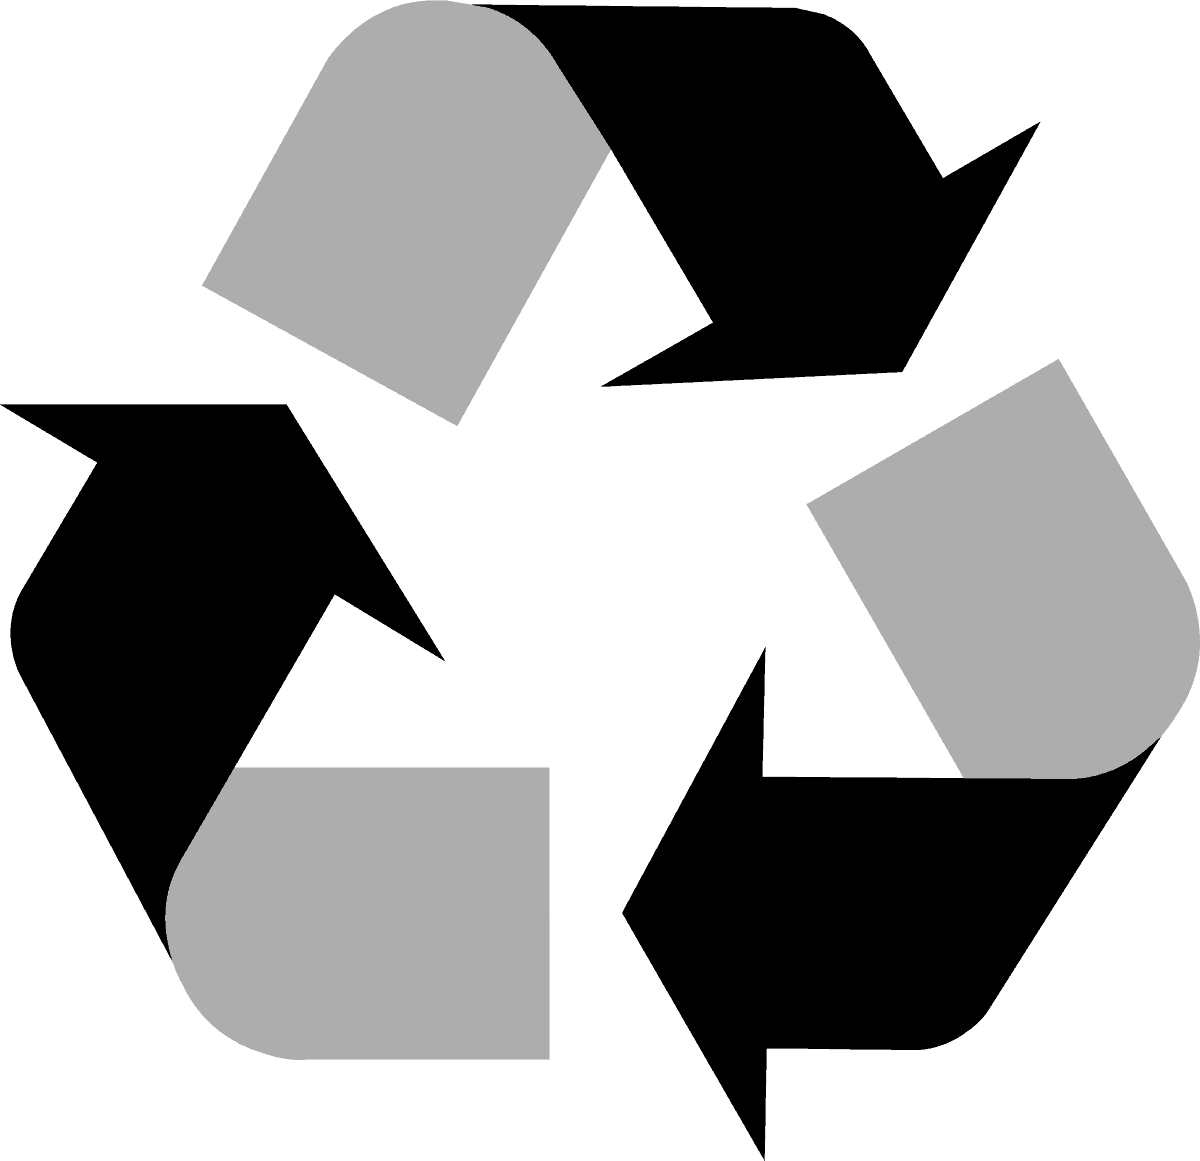 recycling-symbol-icon-twotone-black